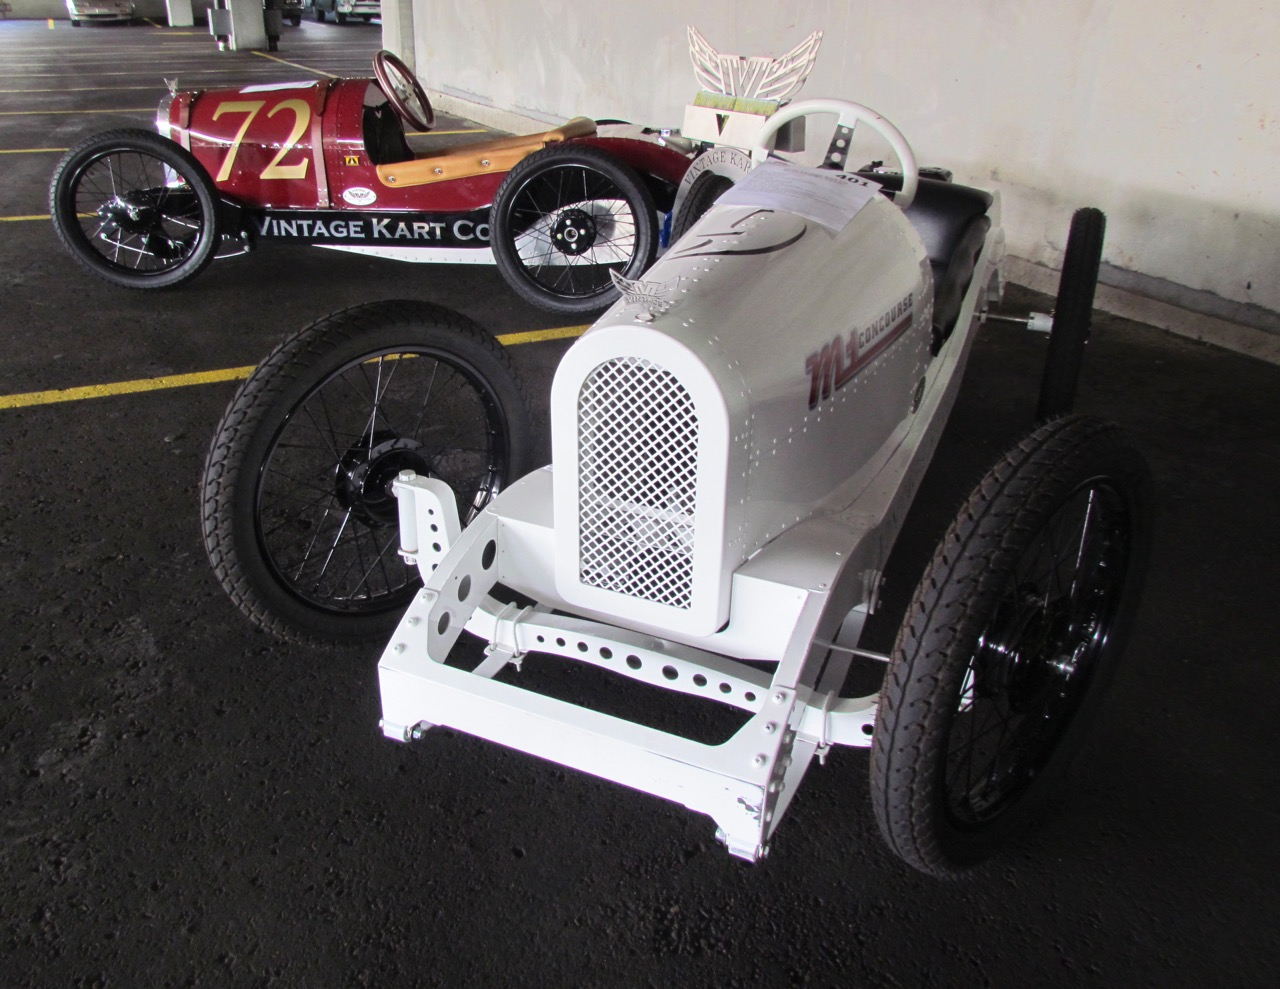 A pair of mini racers at the Detroit auction